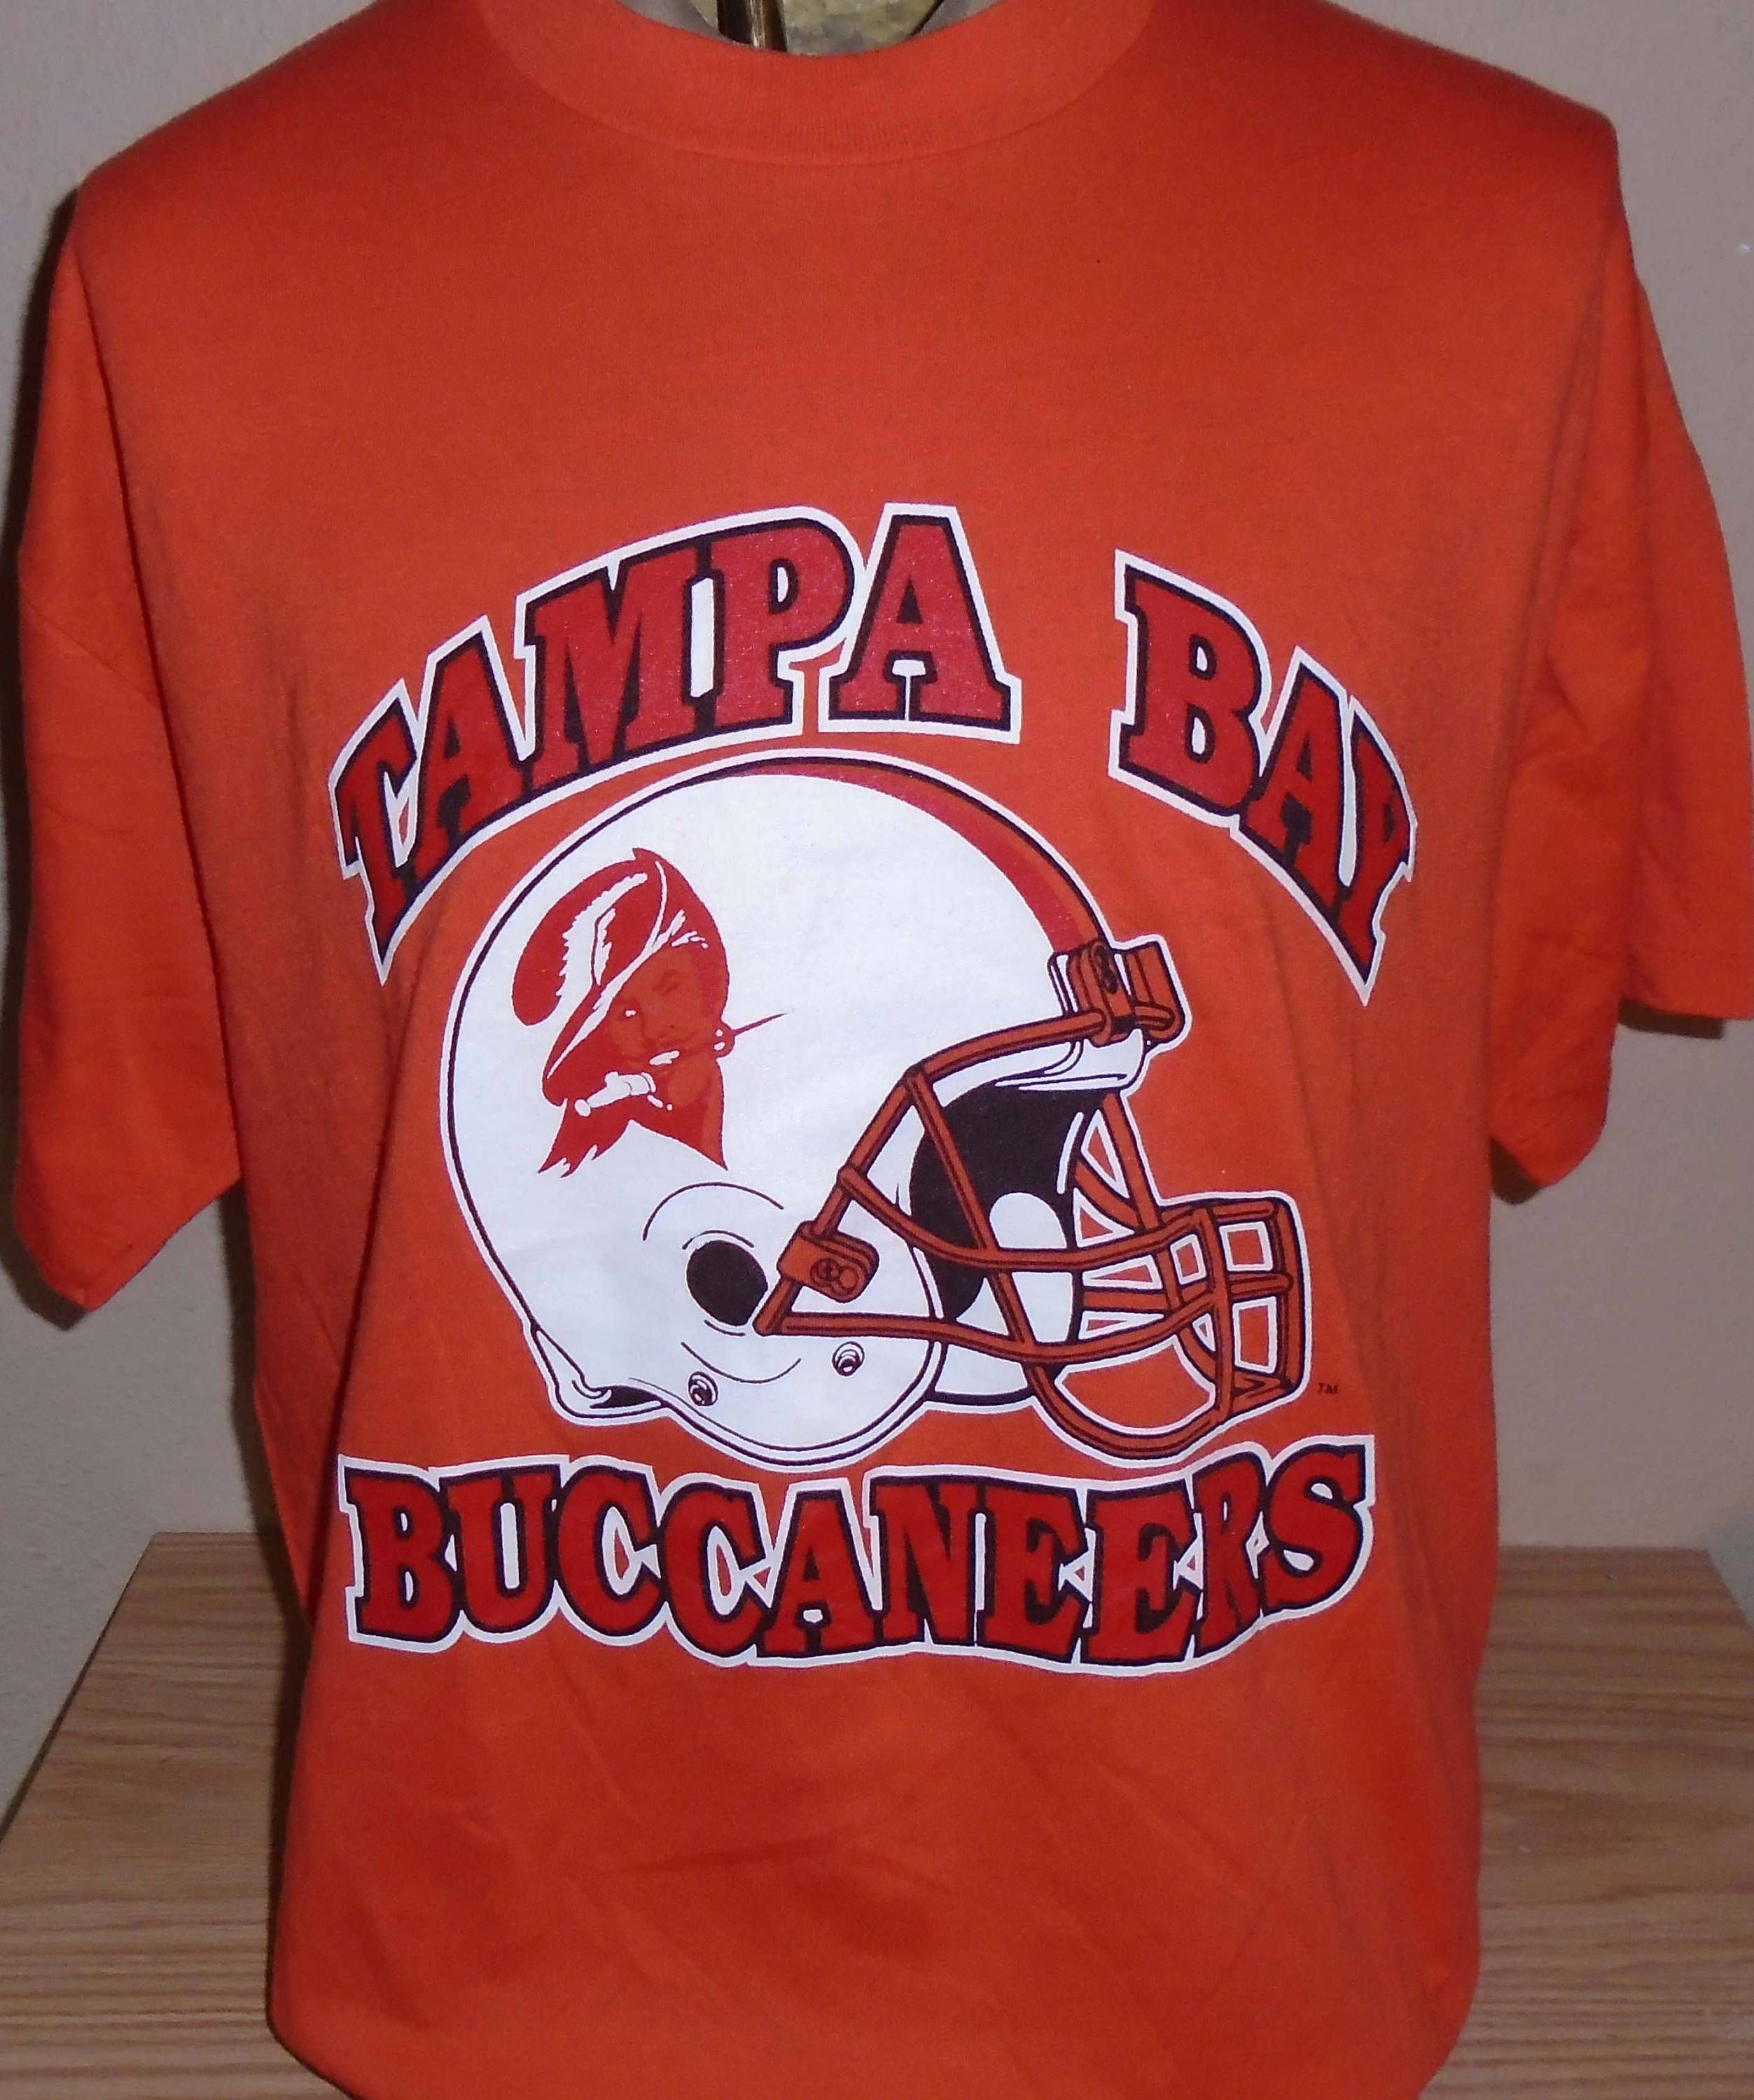 Vintage 1980s Tampa Bay Buccaneers Nfl Football T Shirt Xl 50 50 By Vintagerhino247 On Etsy Football Tshirts Tampa Bay Buccaneers Buccaneers